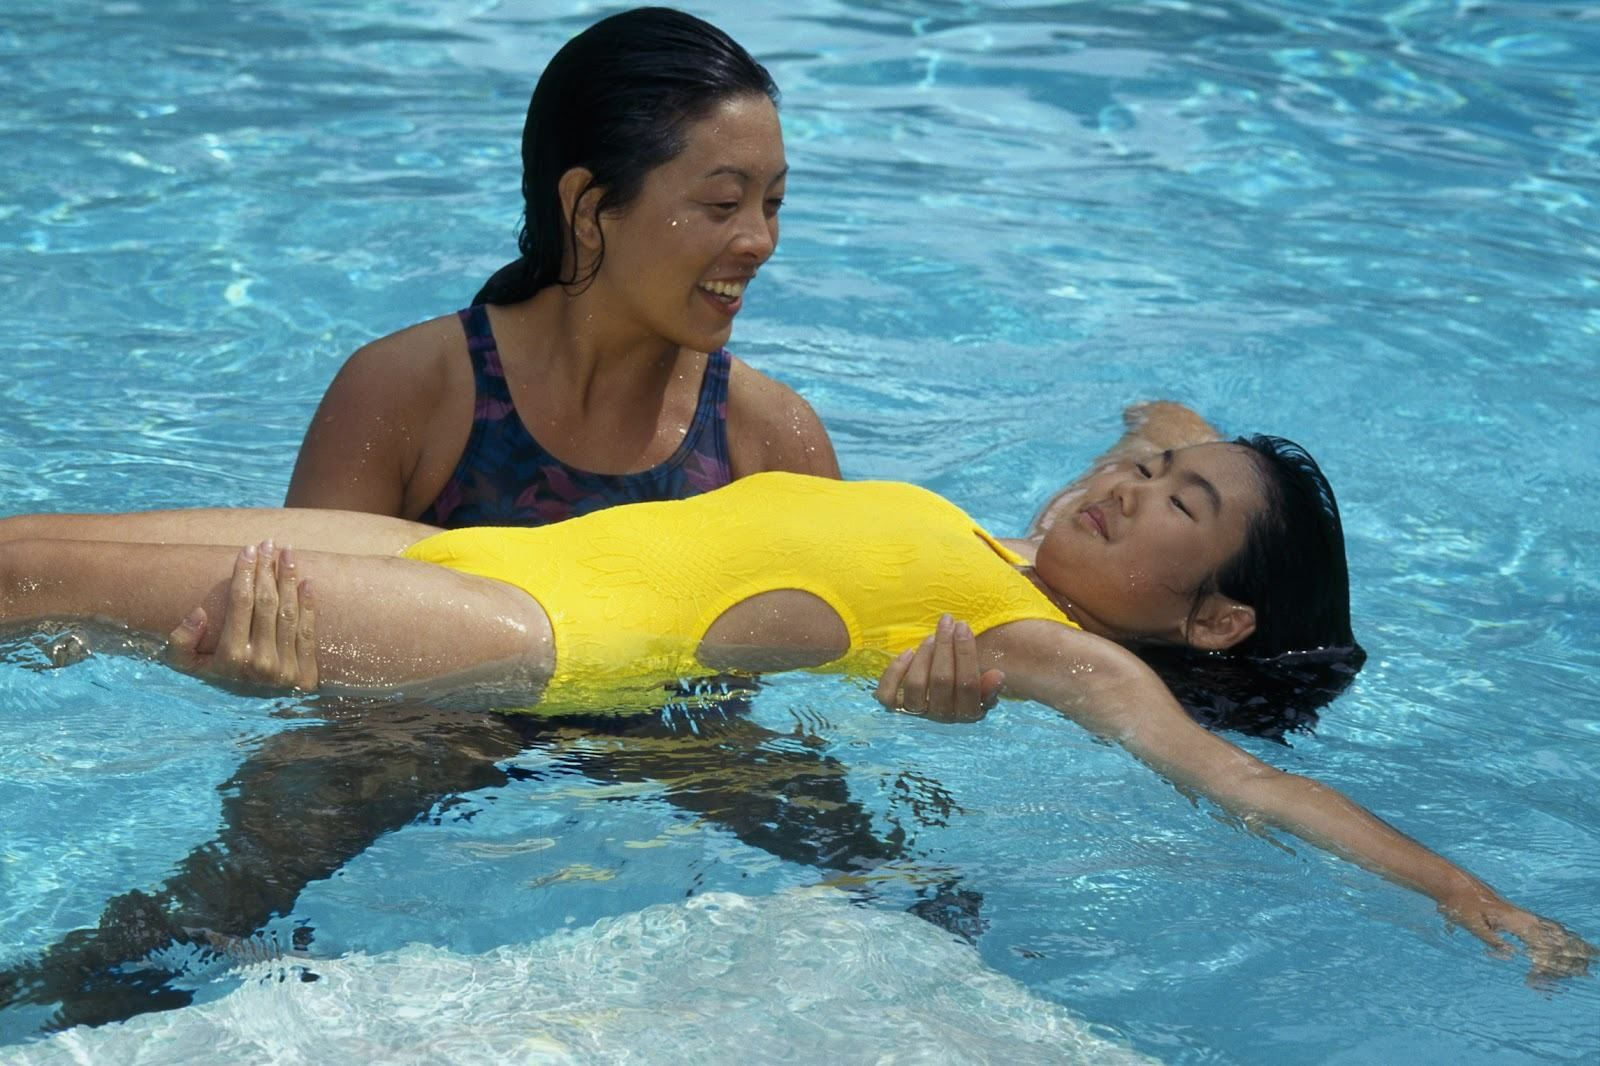 Kids Playing Dad Swimming Pool Hd Wallpapers Backgrounds Kids S Physical Therapy Exercises Physical Therapy Exercise